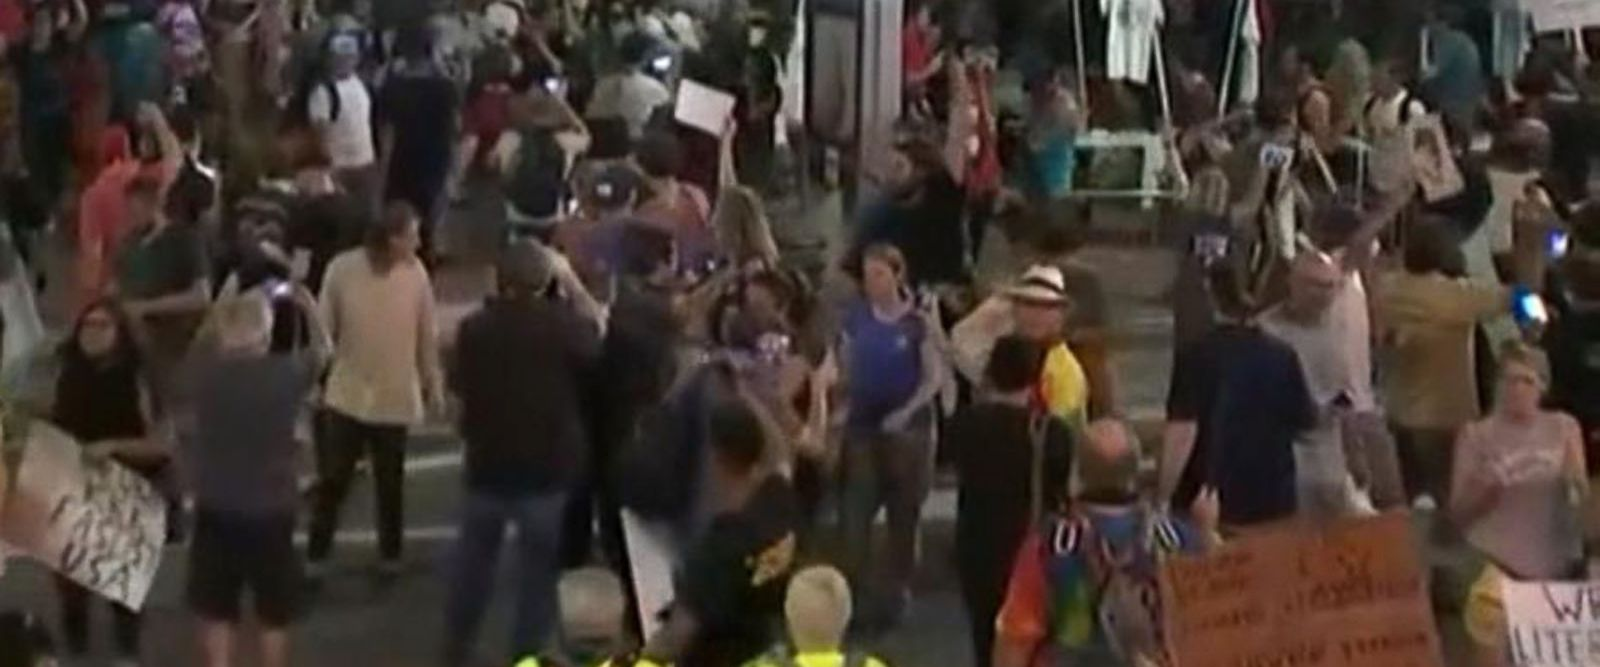 VIDEO: Crowd turns disorderly after President Trump's rally in Phoenix, Arizona